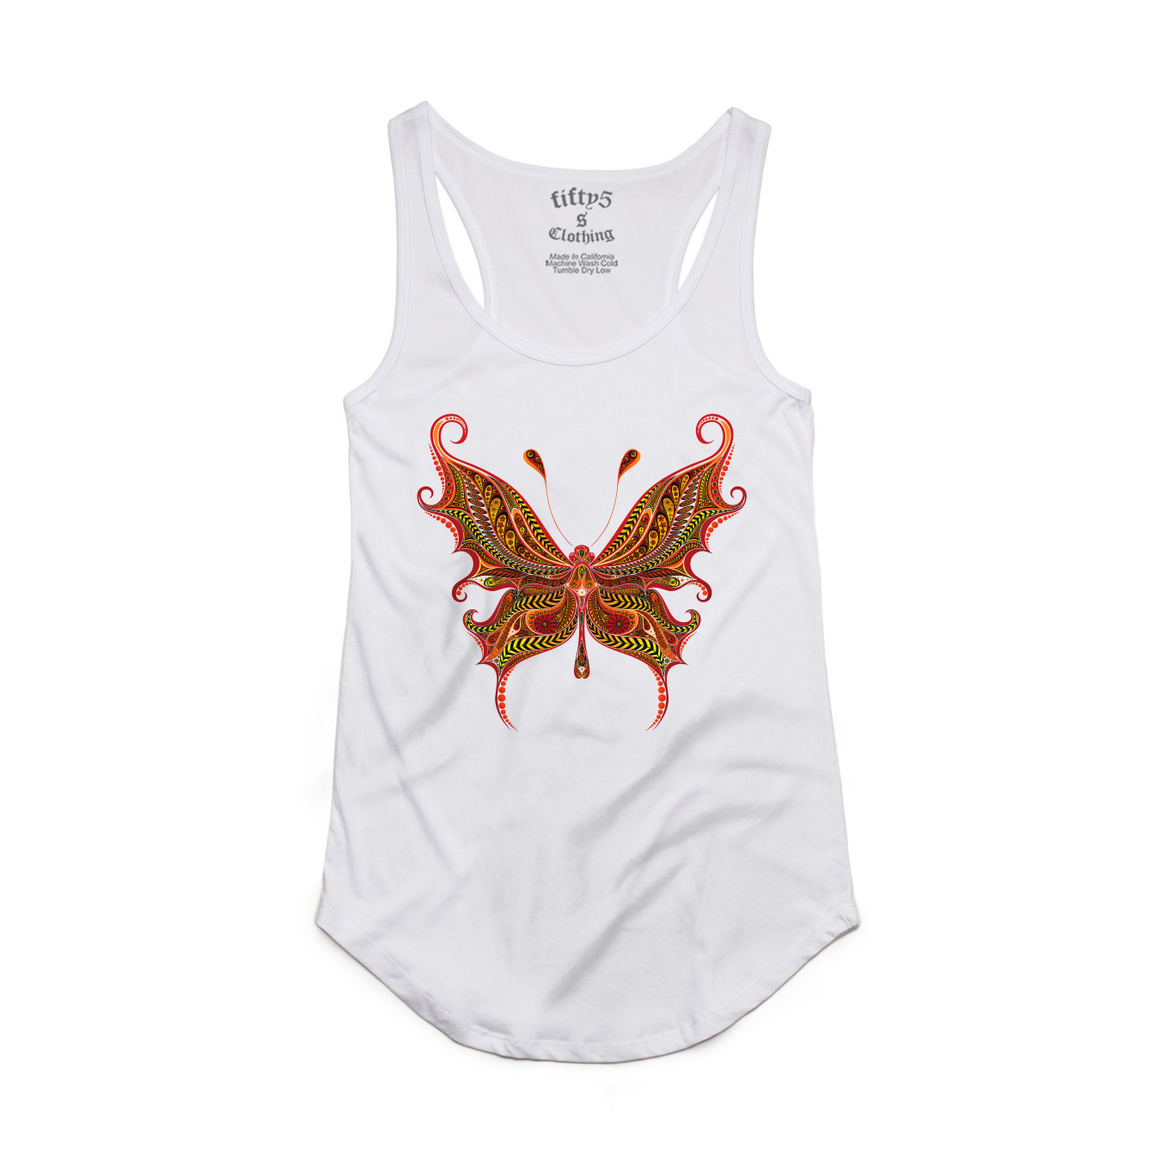 Fifty5 Fire Butterfly Women's Luxe Panel Detail Racerback Tank Top